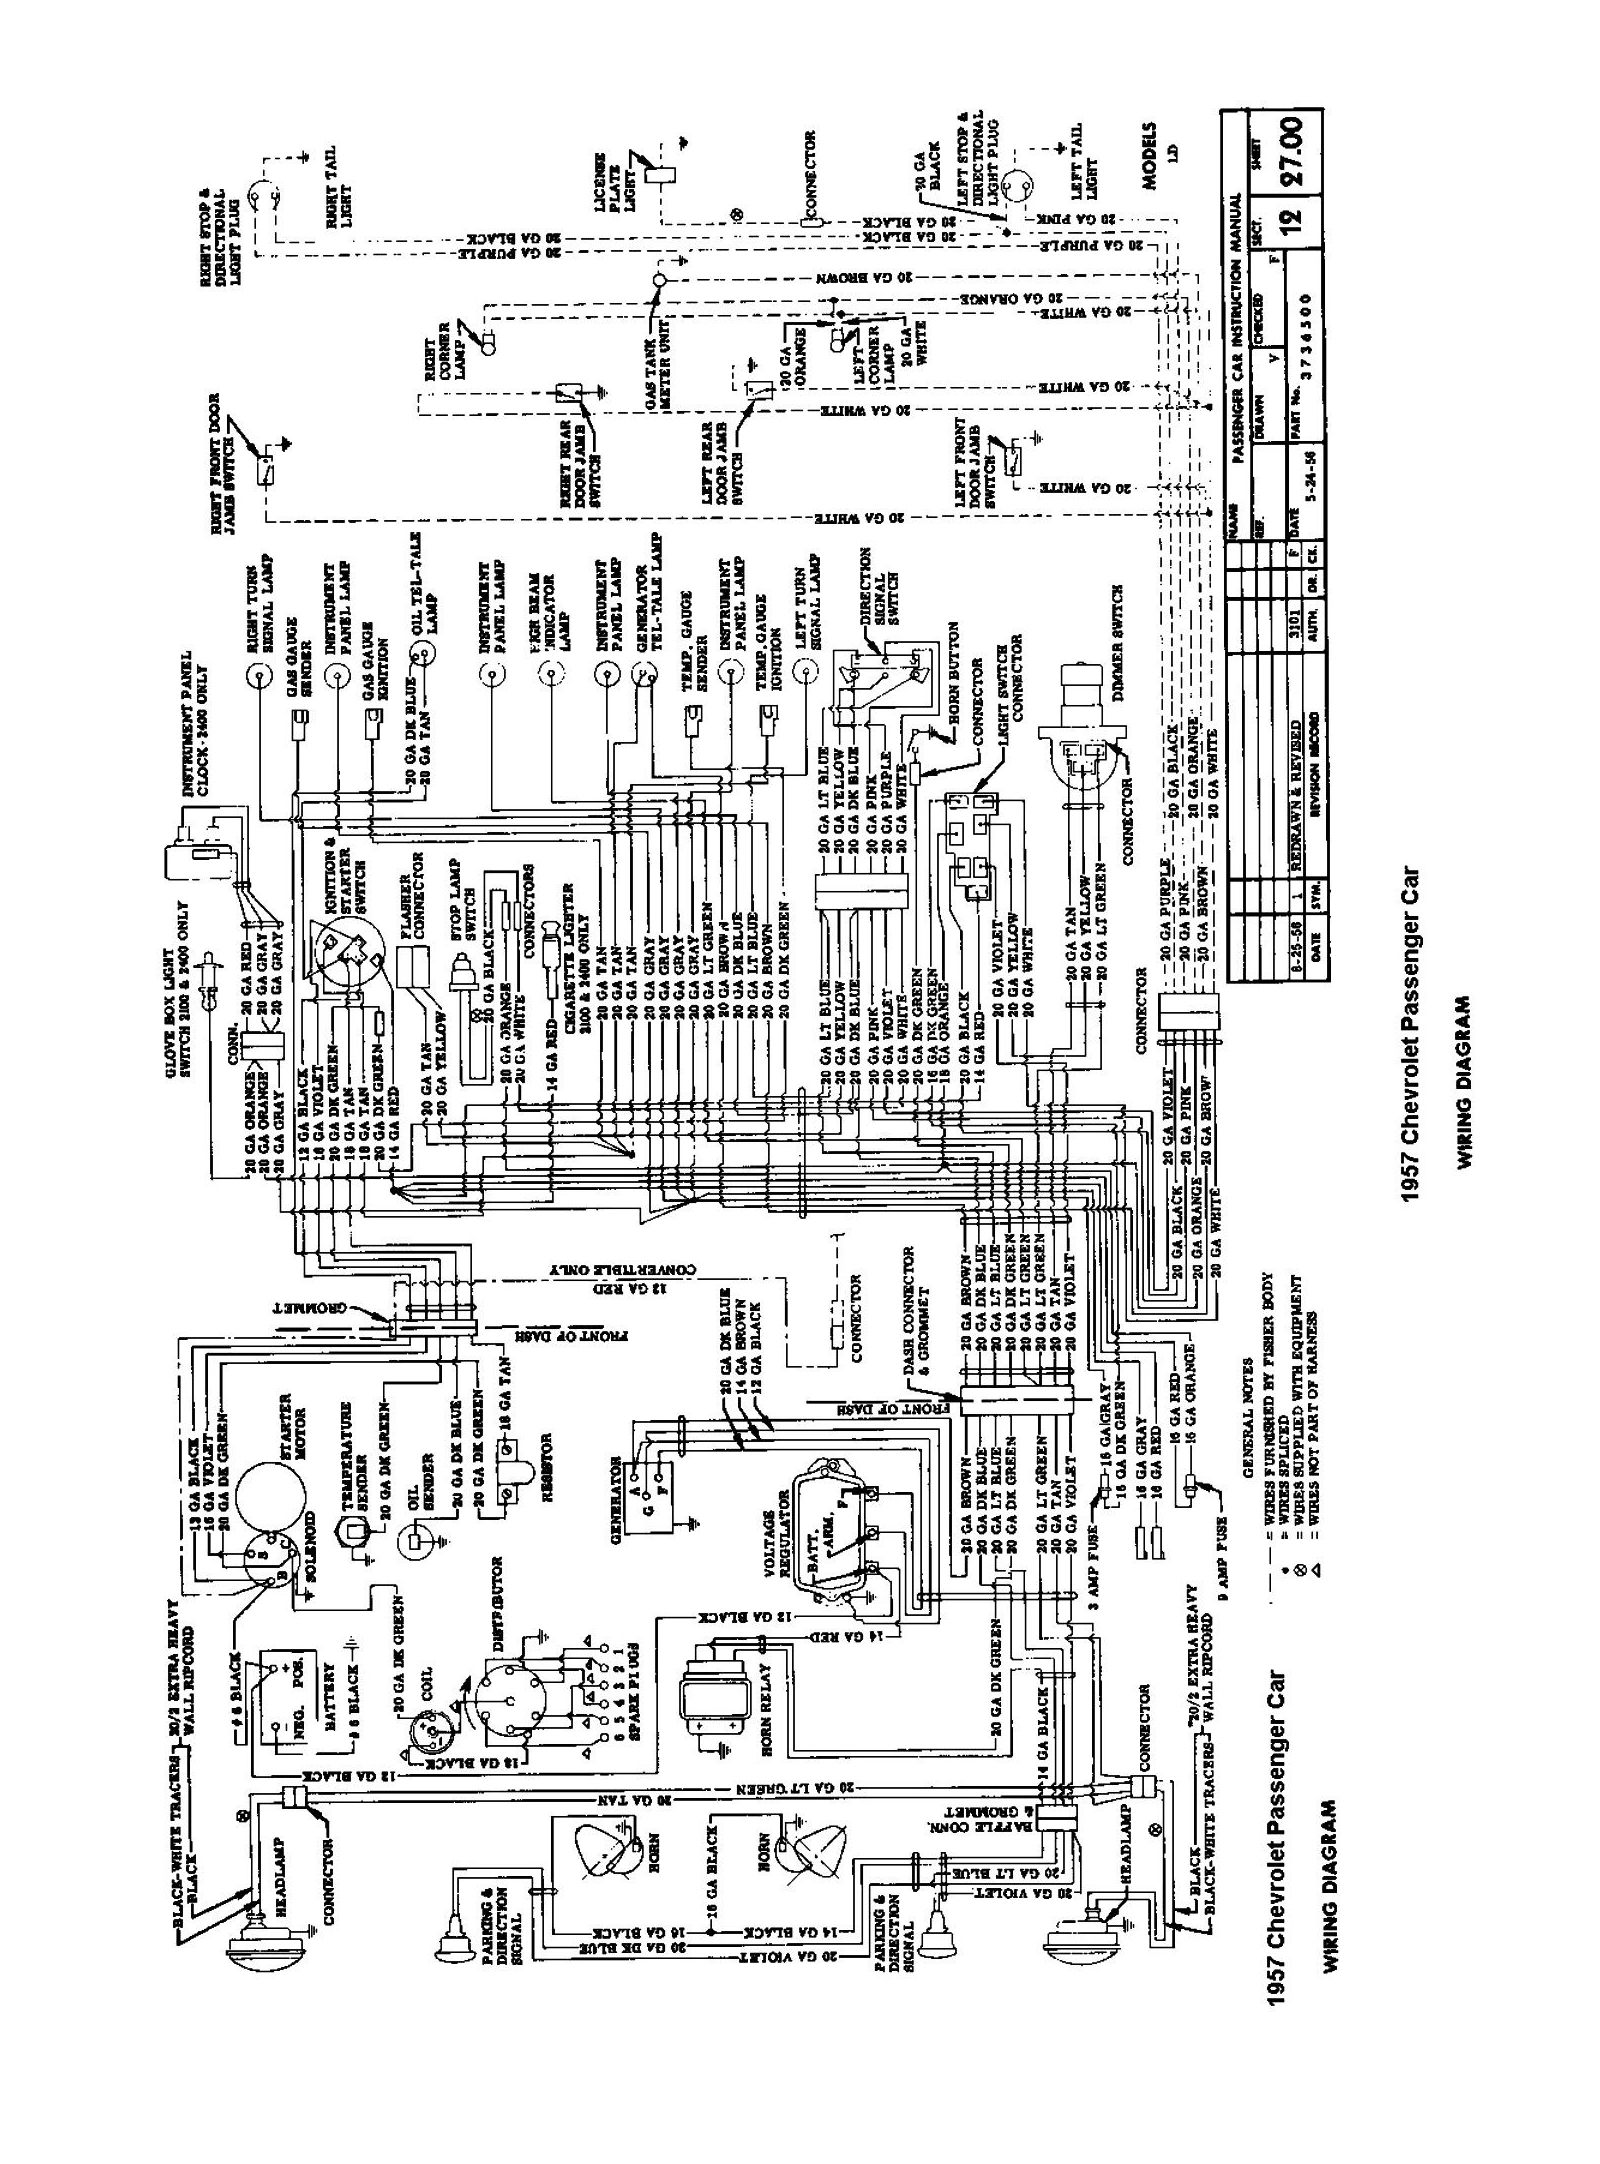 1958 Apache Wiring Diagram Dodge Magnum Radio Wiring Harness Begeboy Wiring Diagram Source